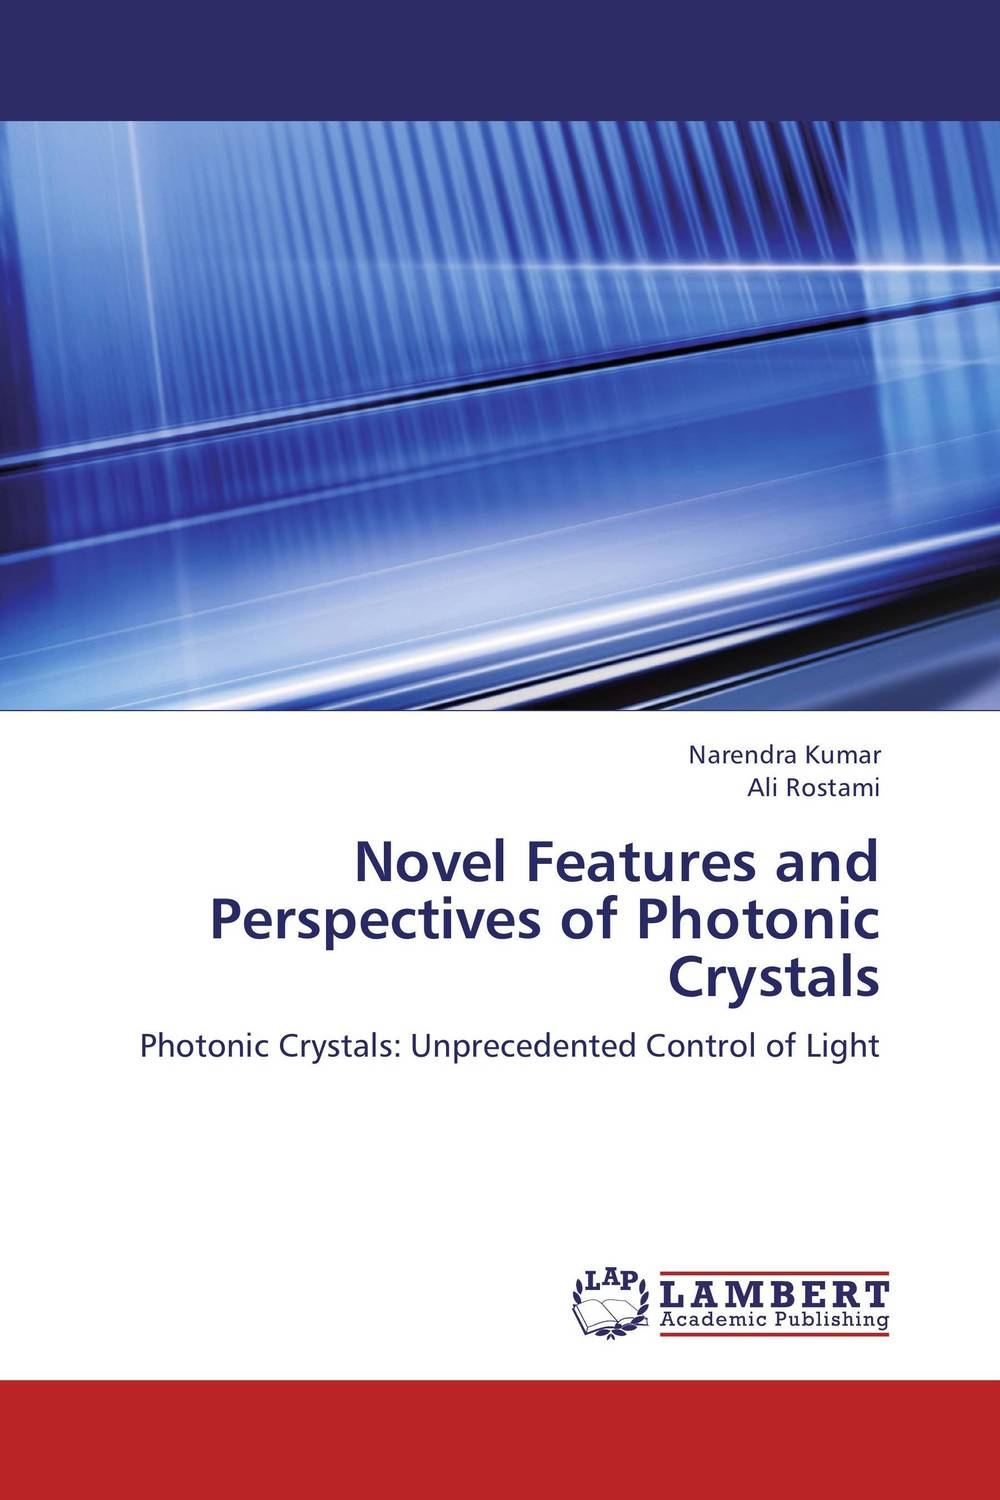 Novel Features and Perspectives of Photonic Crystals одежда для отдыха blue summer lsxt15a8991 2015